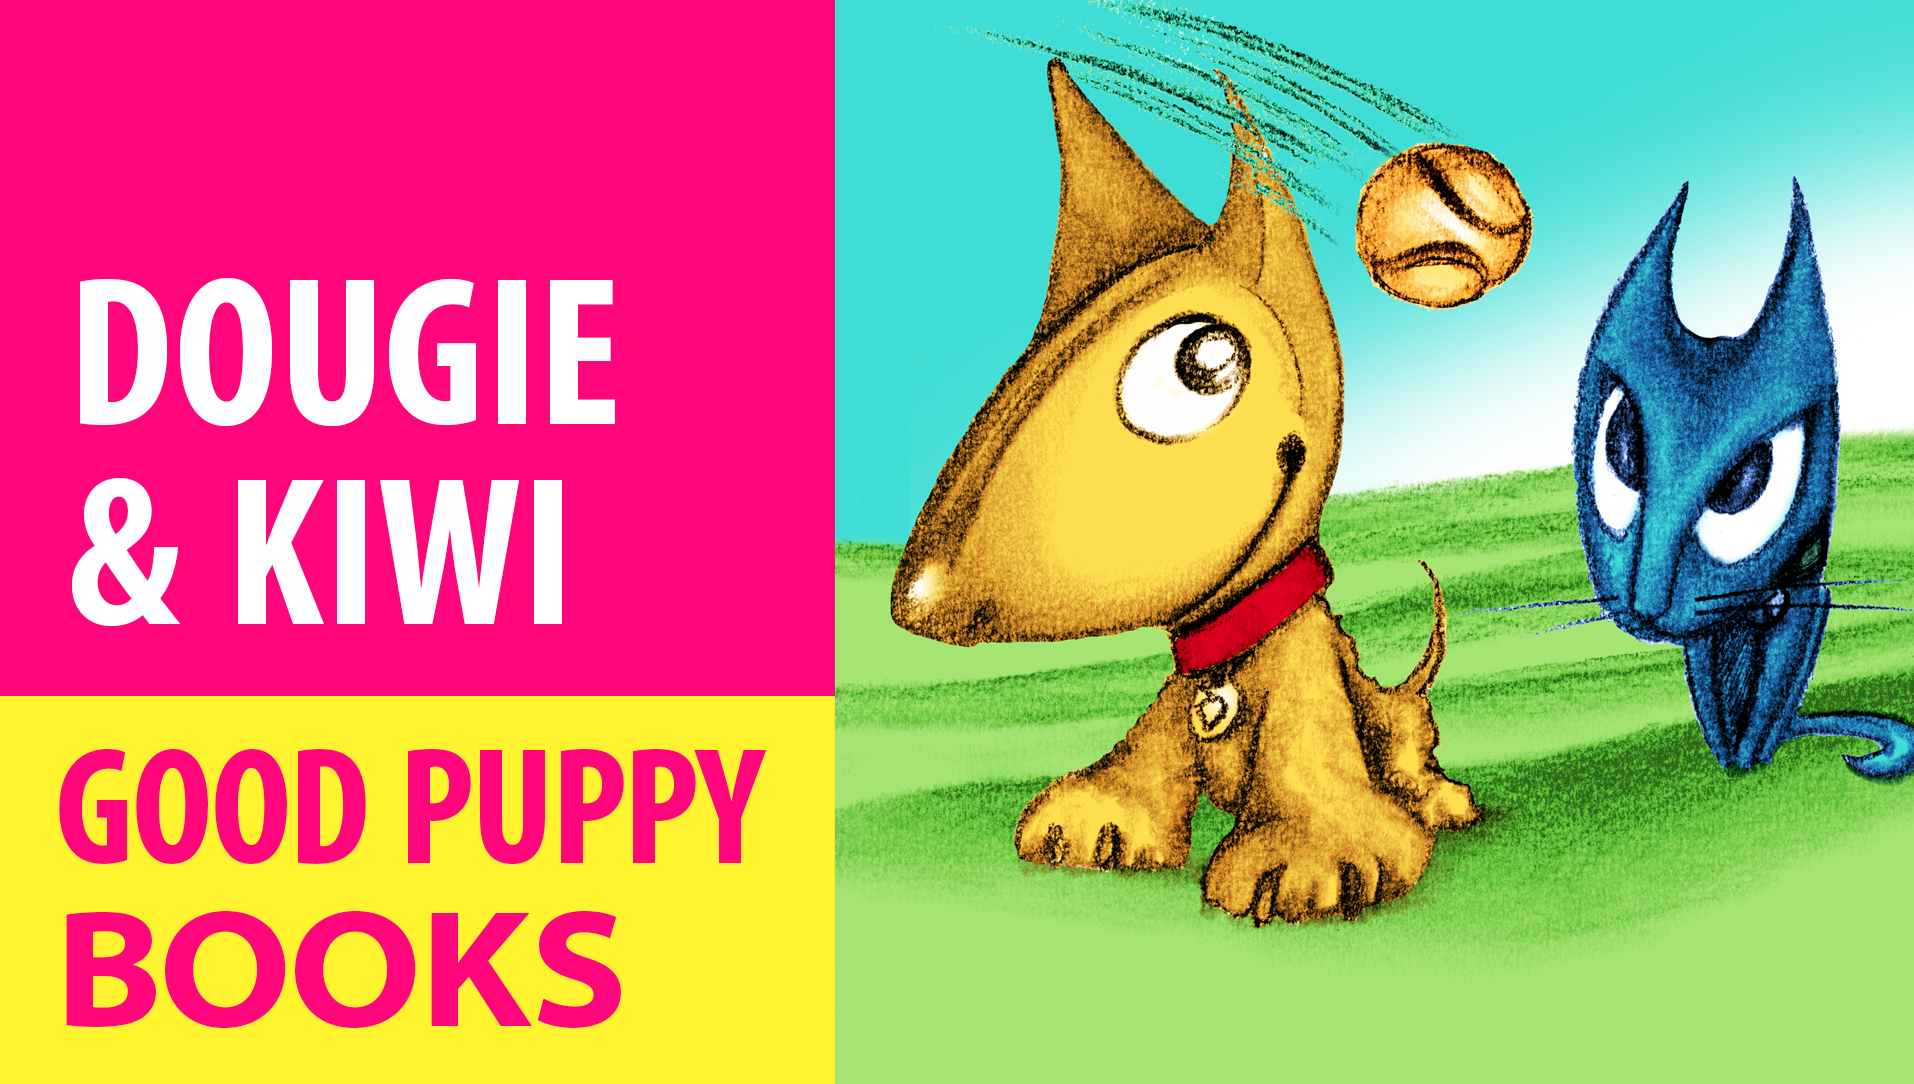 CHILDREN'S PICTURE BOOKS : Dougie & Kiwi . Daily Adventures